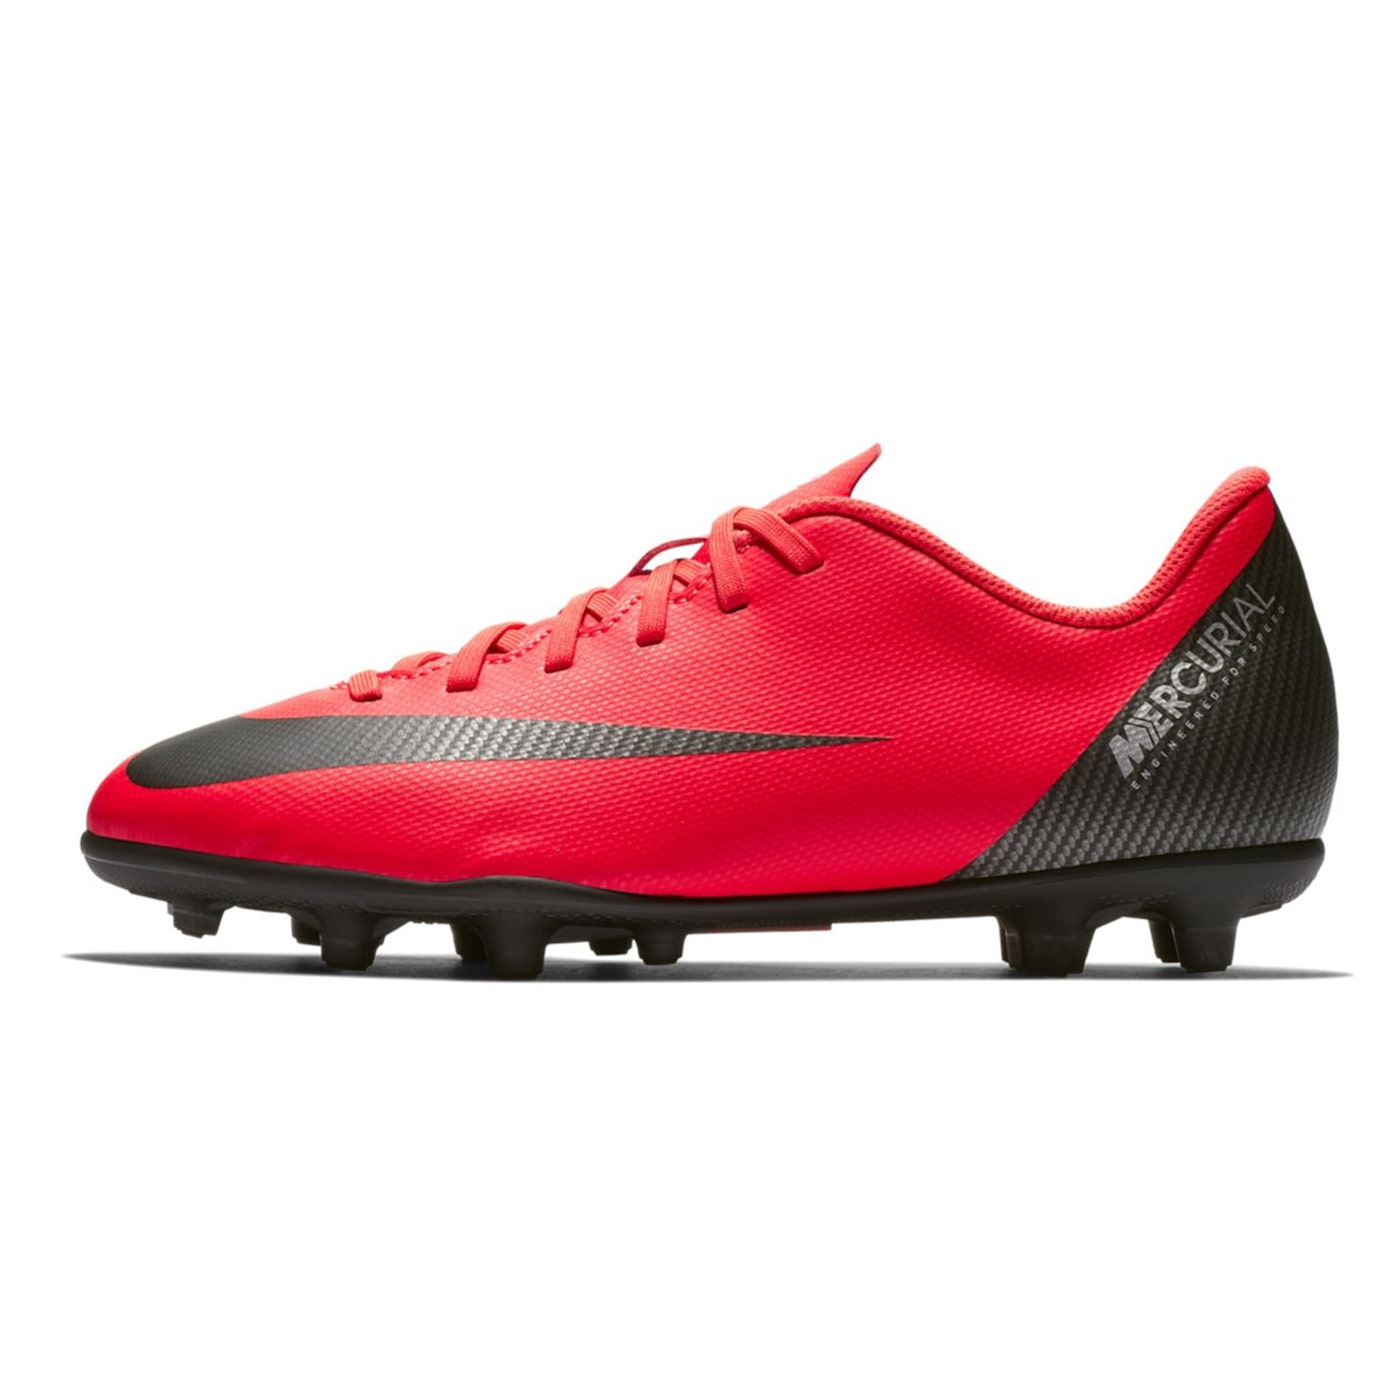 Nike Mercurial Vapor Club CR7 Junior FG Football Boots